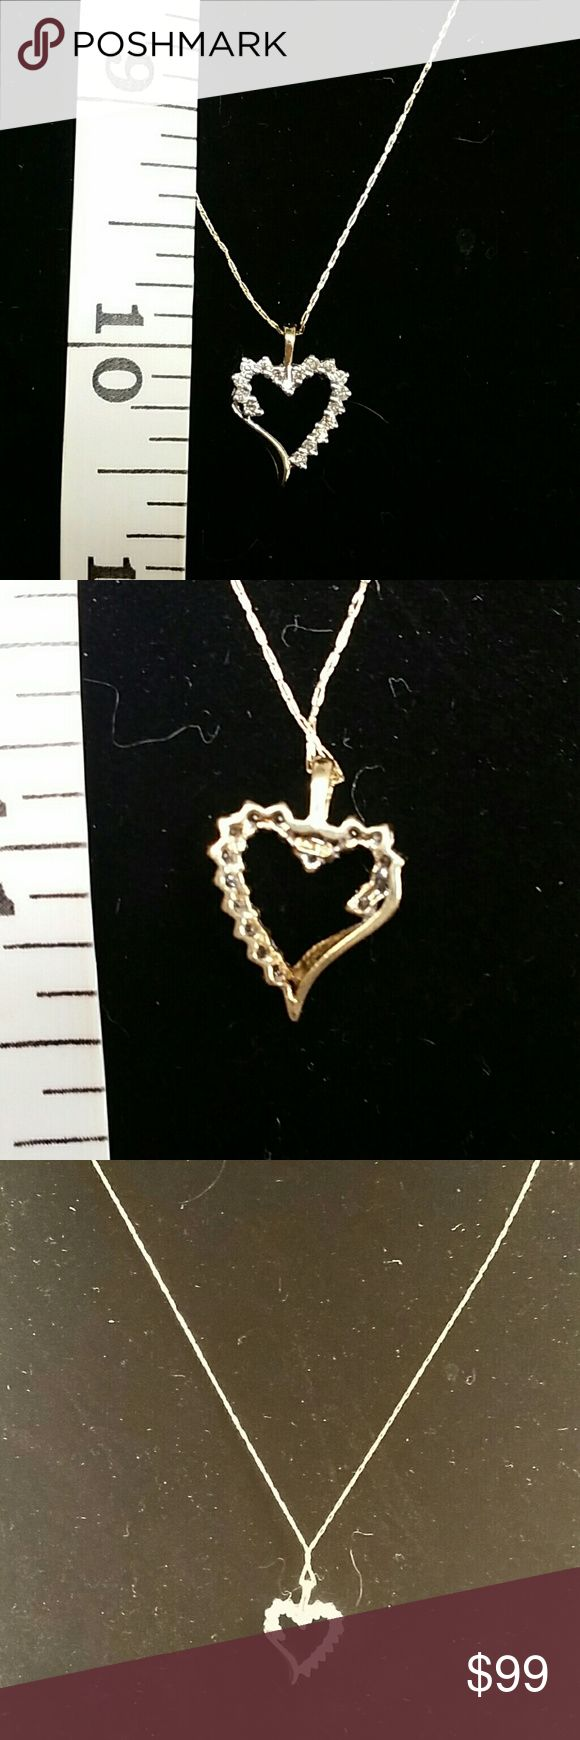 Solid 10k diamond heart pendant Awesome diamond heart pendant set in solid 10k gold! Nice size bale to accommodate your chain. Chain here is not included. May have a chain also listed.  Genuine clear diamonds, inclusions under magnification.  Offers are welcome! Sorry, no trades. Downsizing personal collection.   Approximately .9 grams Stamped 10k Jewelry Necklaces